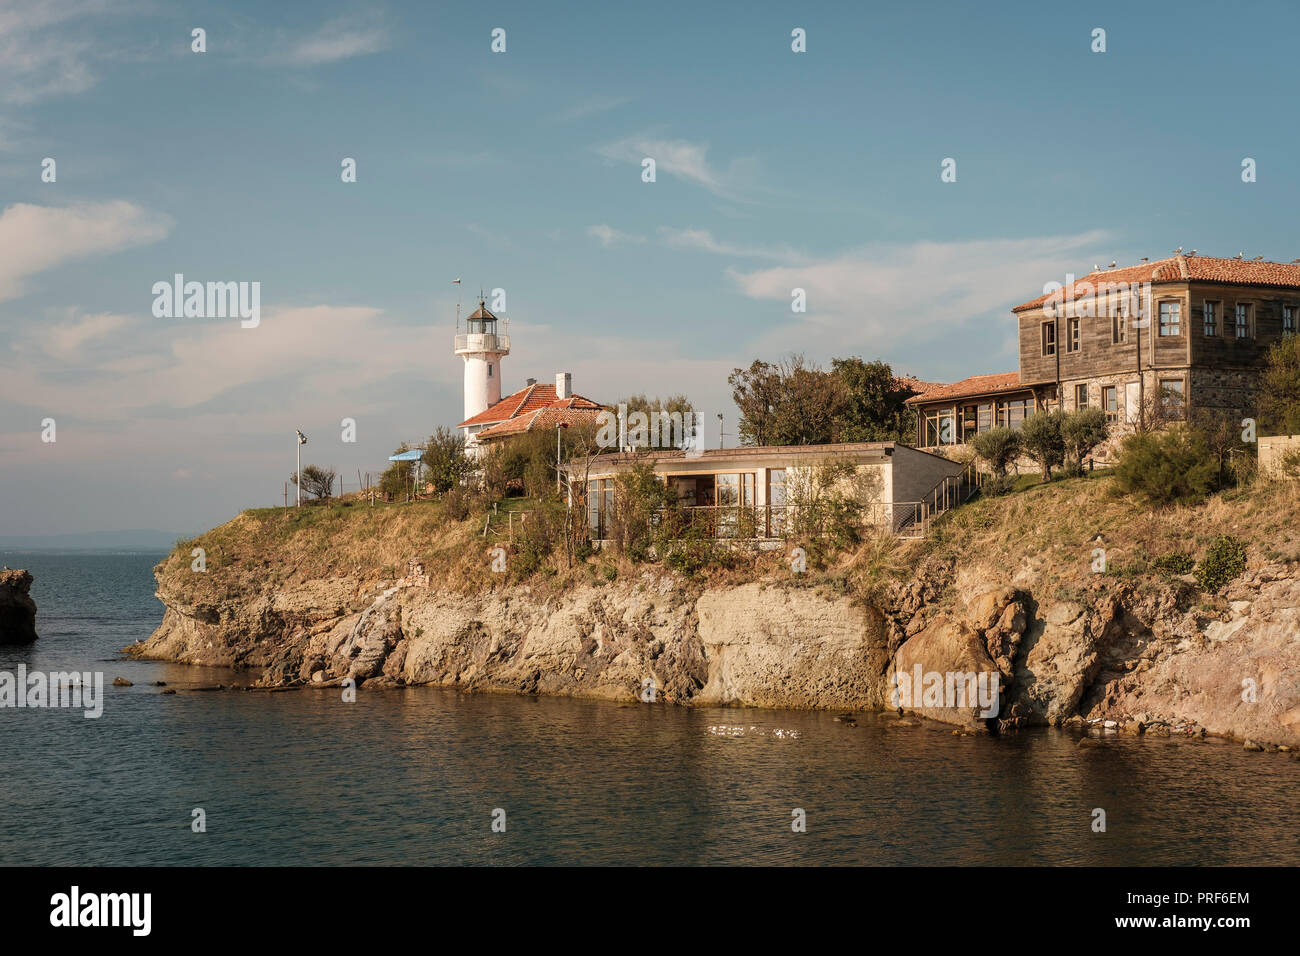 St. Anastasia Island is a Bulgarian islet in the Black Sea. It is located 1.5 km off the coast near Chernomorets, at 12 metres above sea level, and co - Stock Image